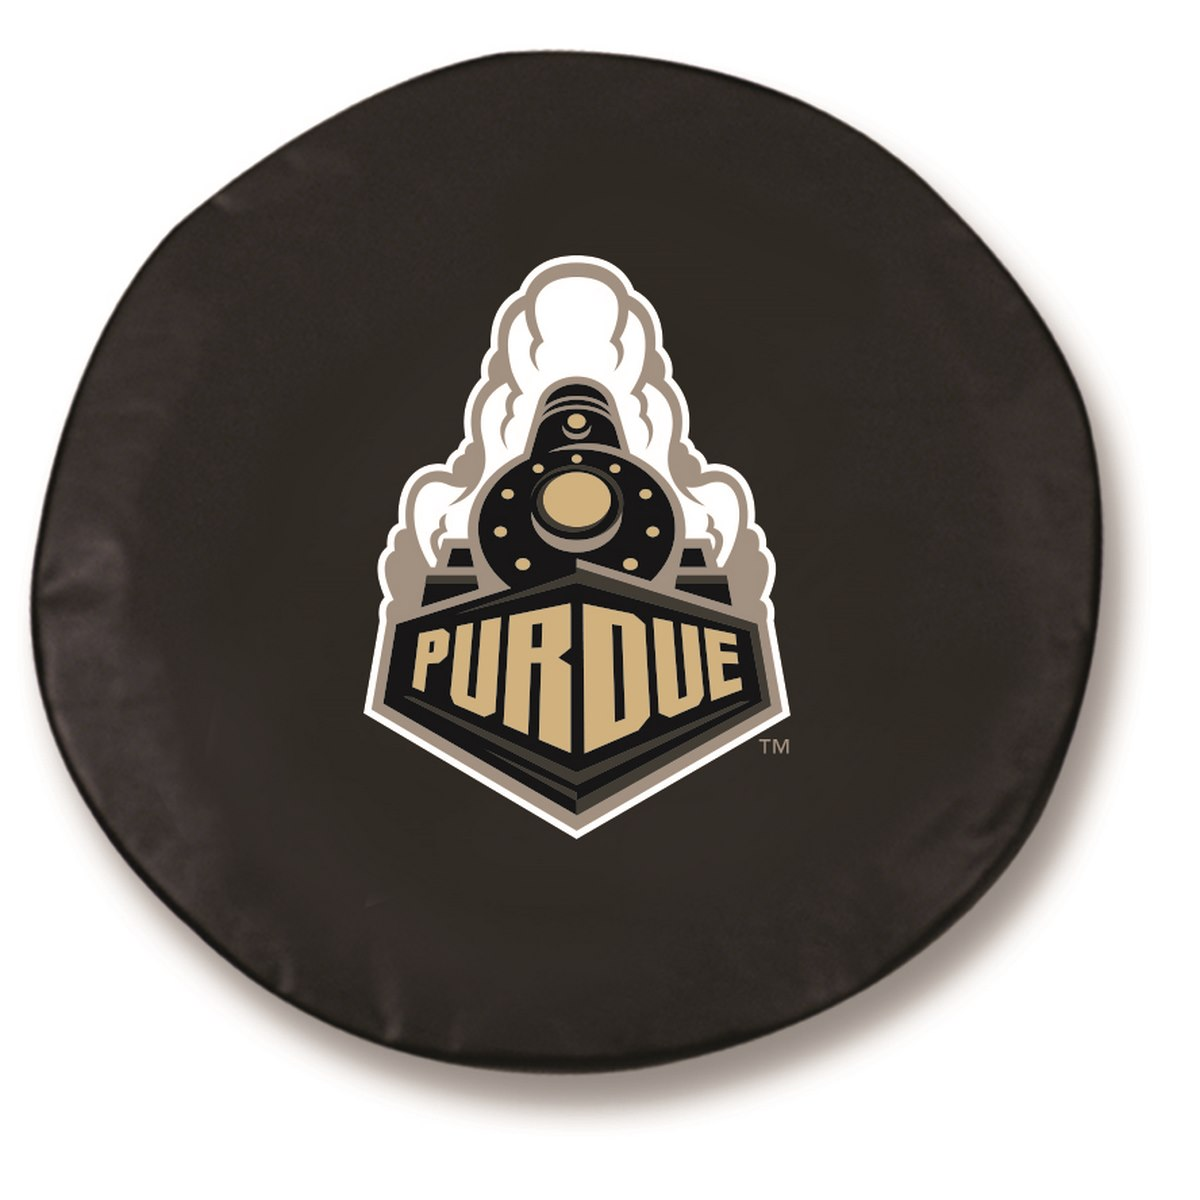 Purdue Boilermakers Black Spare Tire Cover By HBS | Covers